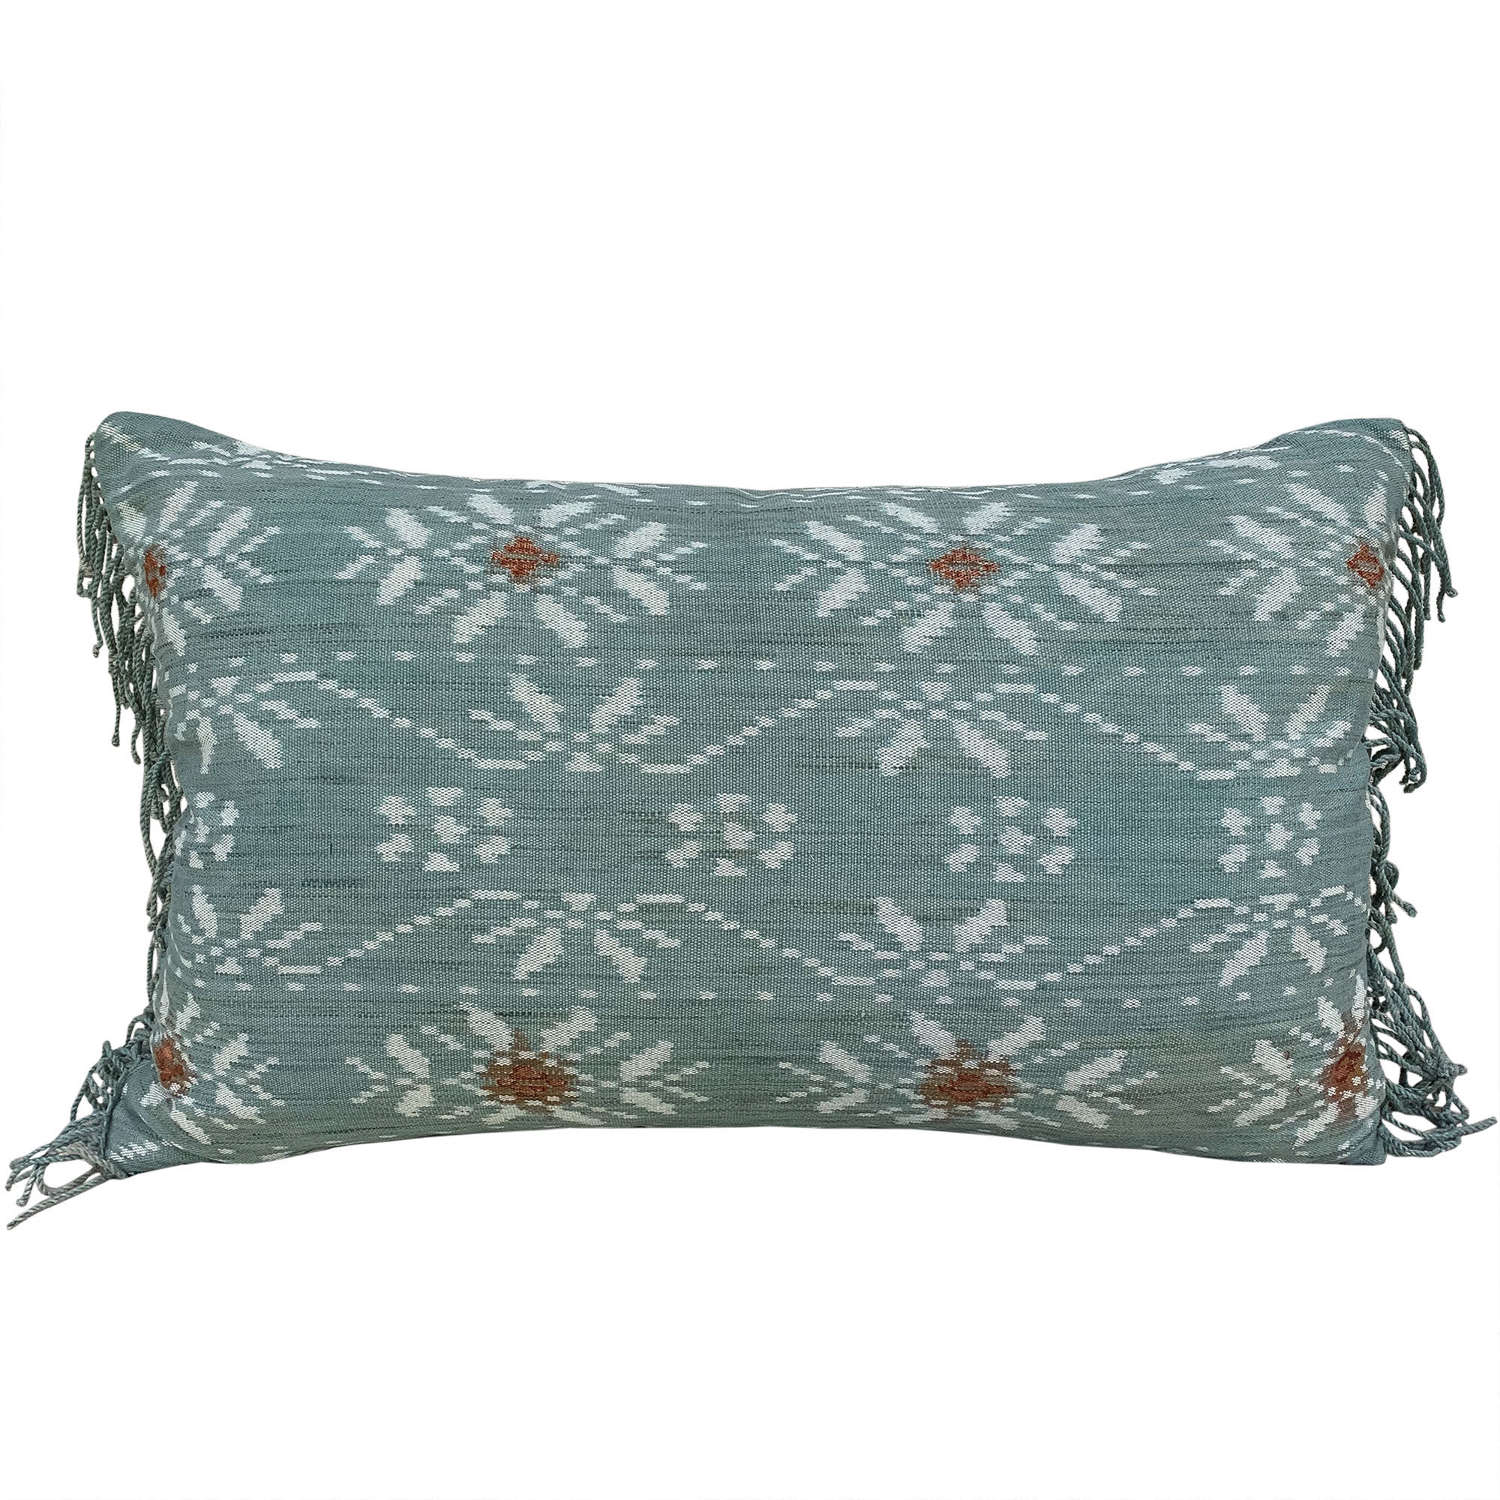 Rote ikat cushion, acqua